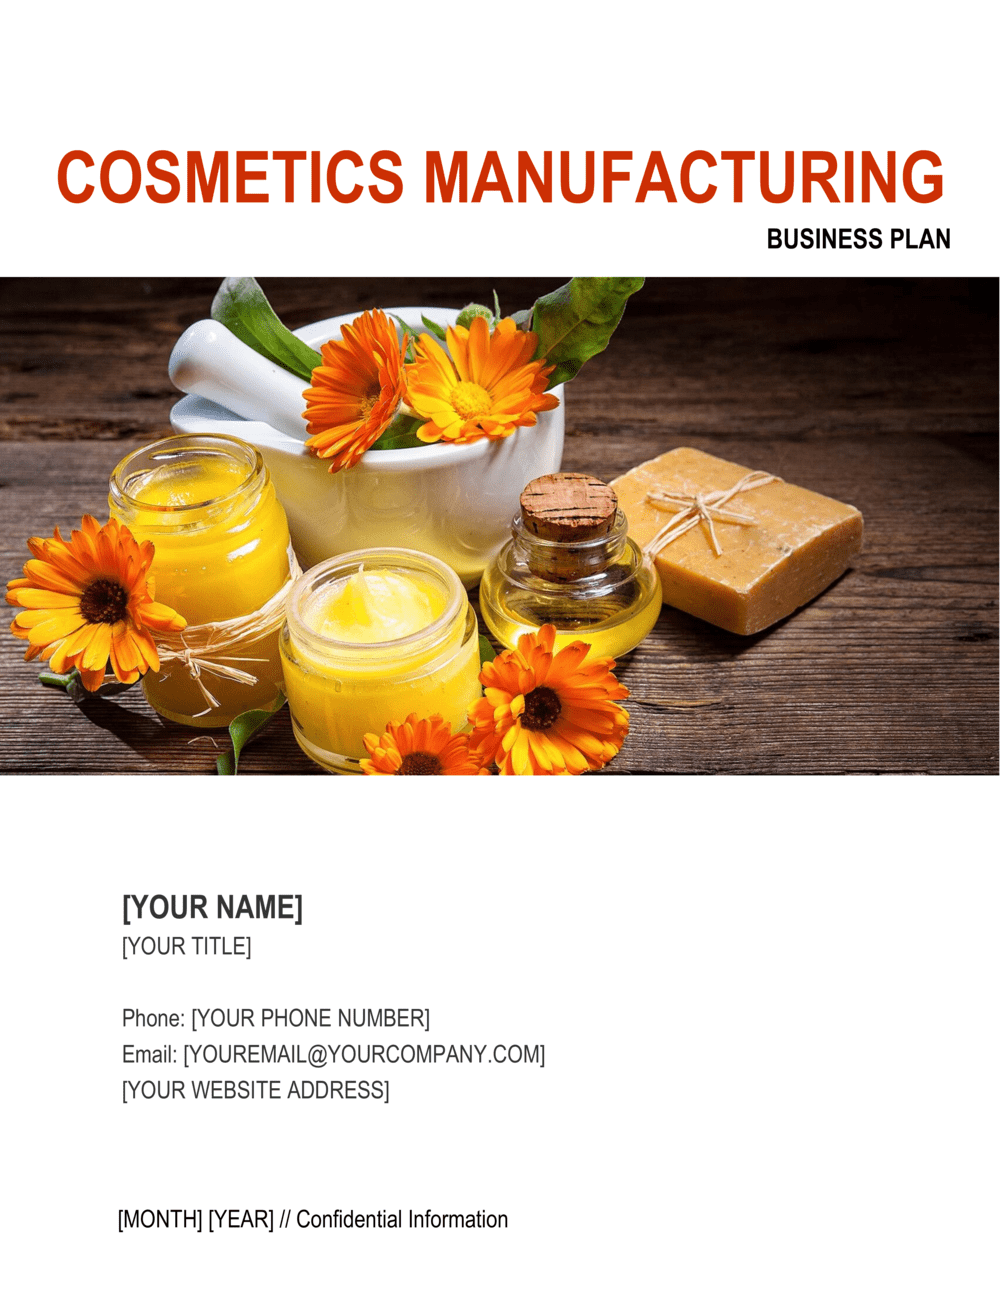 Business-in-a-Box's Cosmetics Manufacturing Business Plan Template